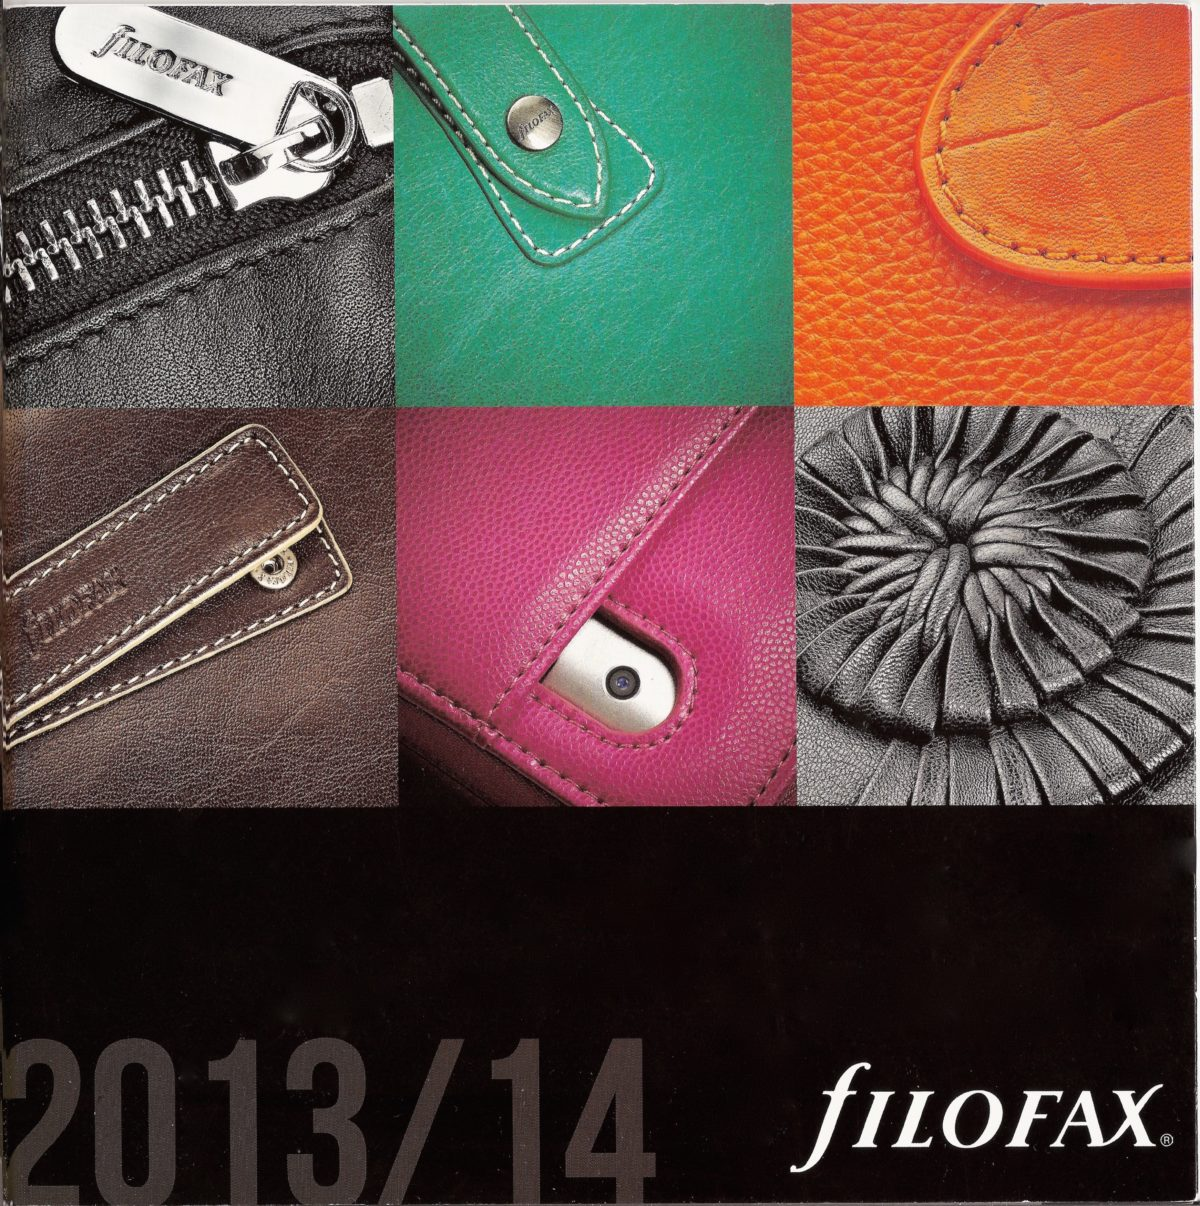 Filofax UK Product Guide 2013/14